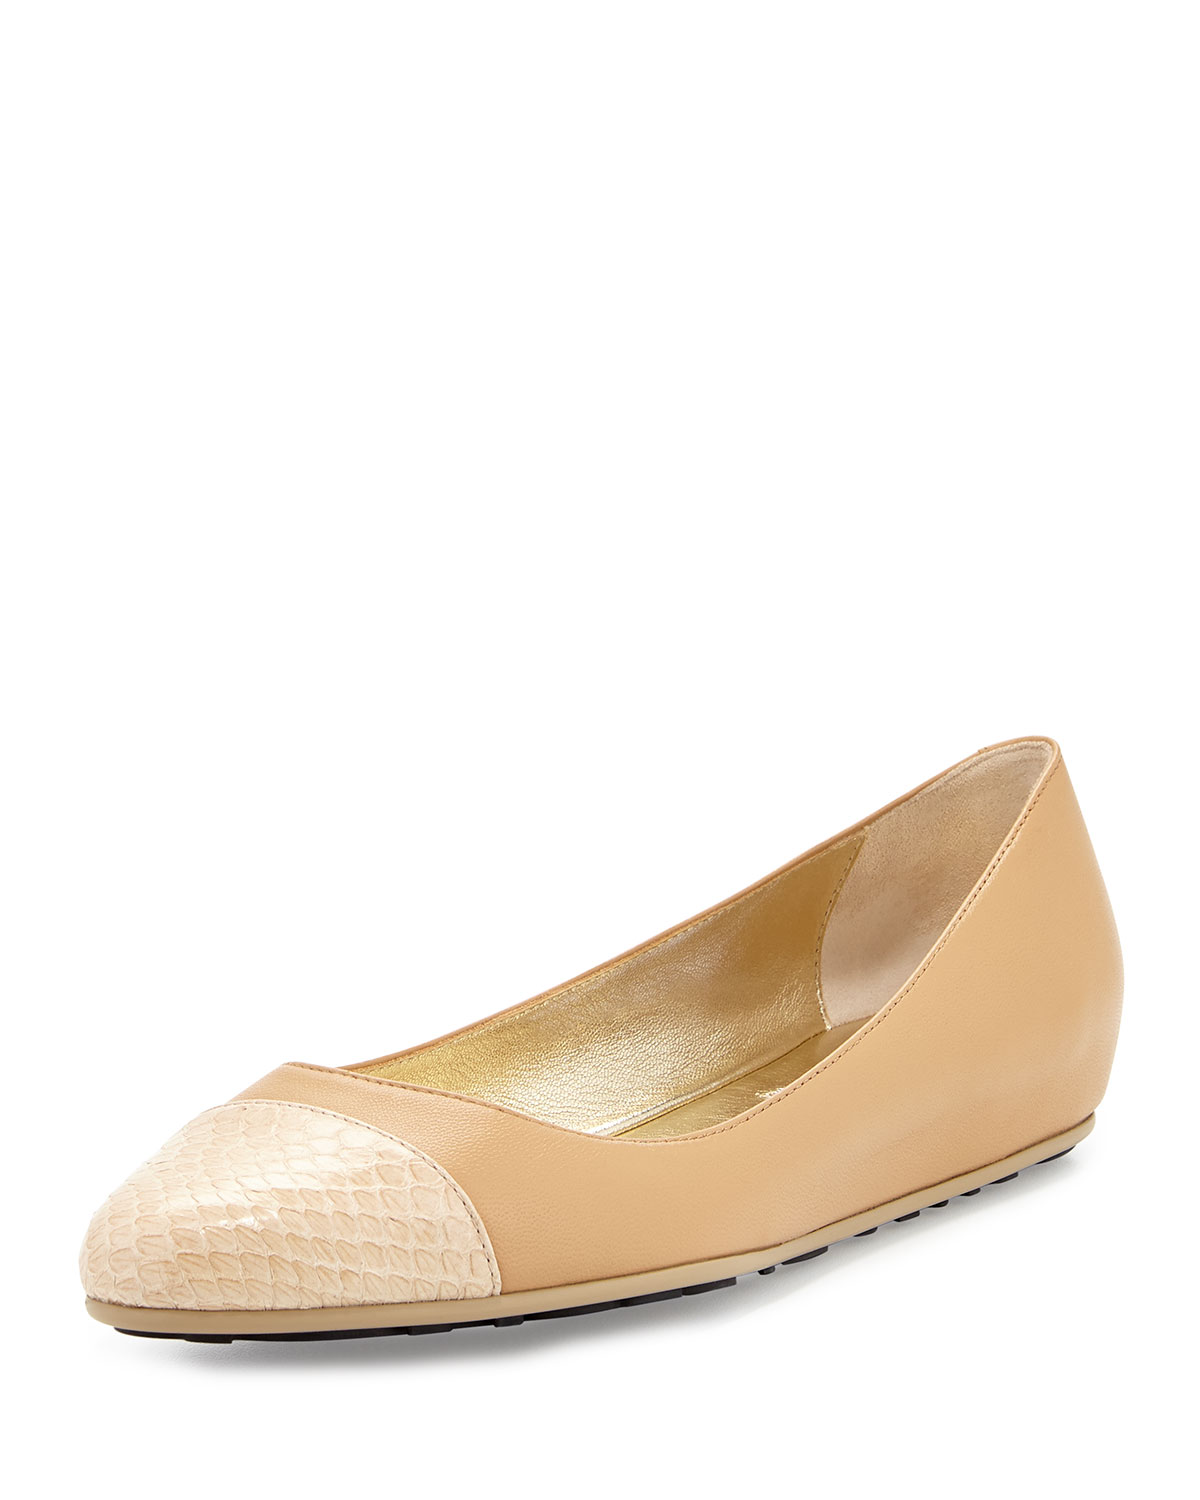 discount shop discount Cheapest Jimmy Choo Waine Cap-Toe Flats best deals official online clearance countdown package 5Gi44q5